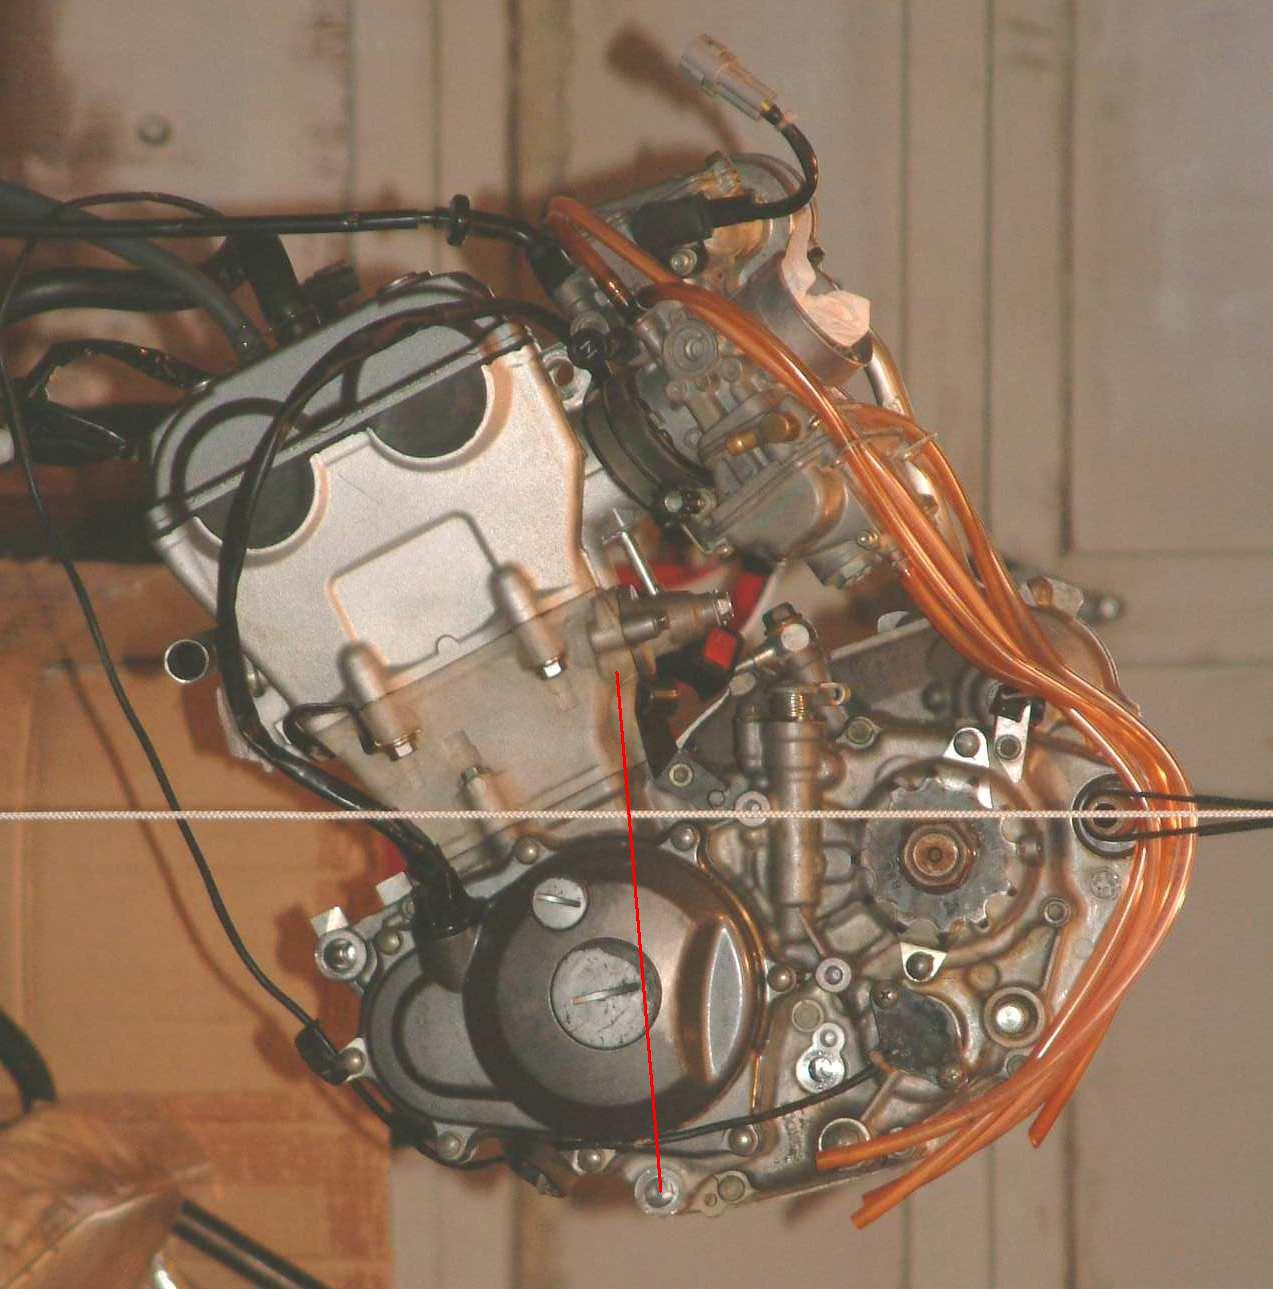 Euro Spares The Yz250fff Project. This Photo Shows The Yz250f Engine. Wiring. 2008 Yz250f Engine Diagram At Scoala.co